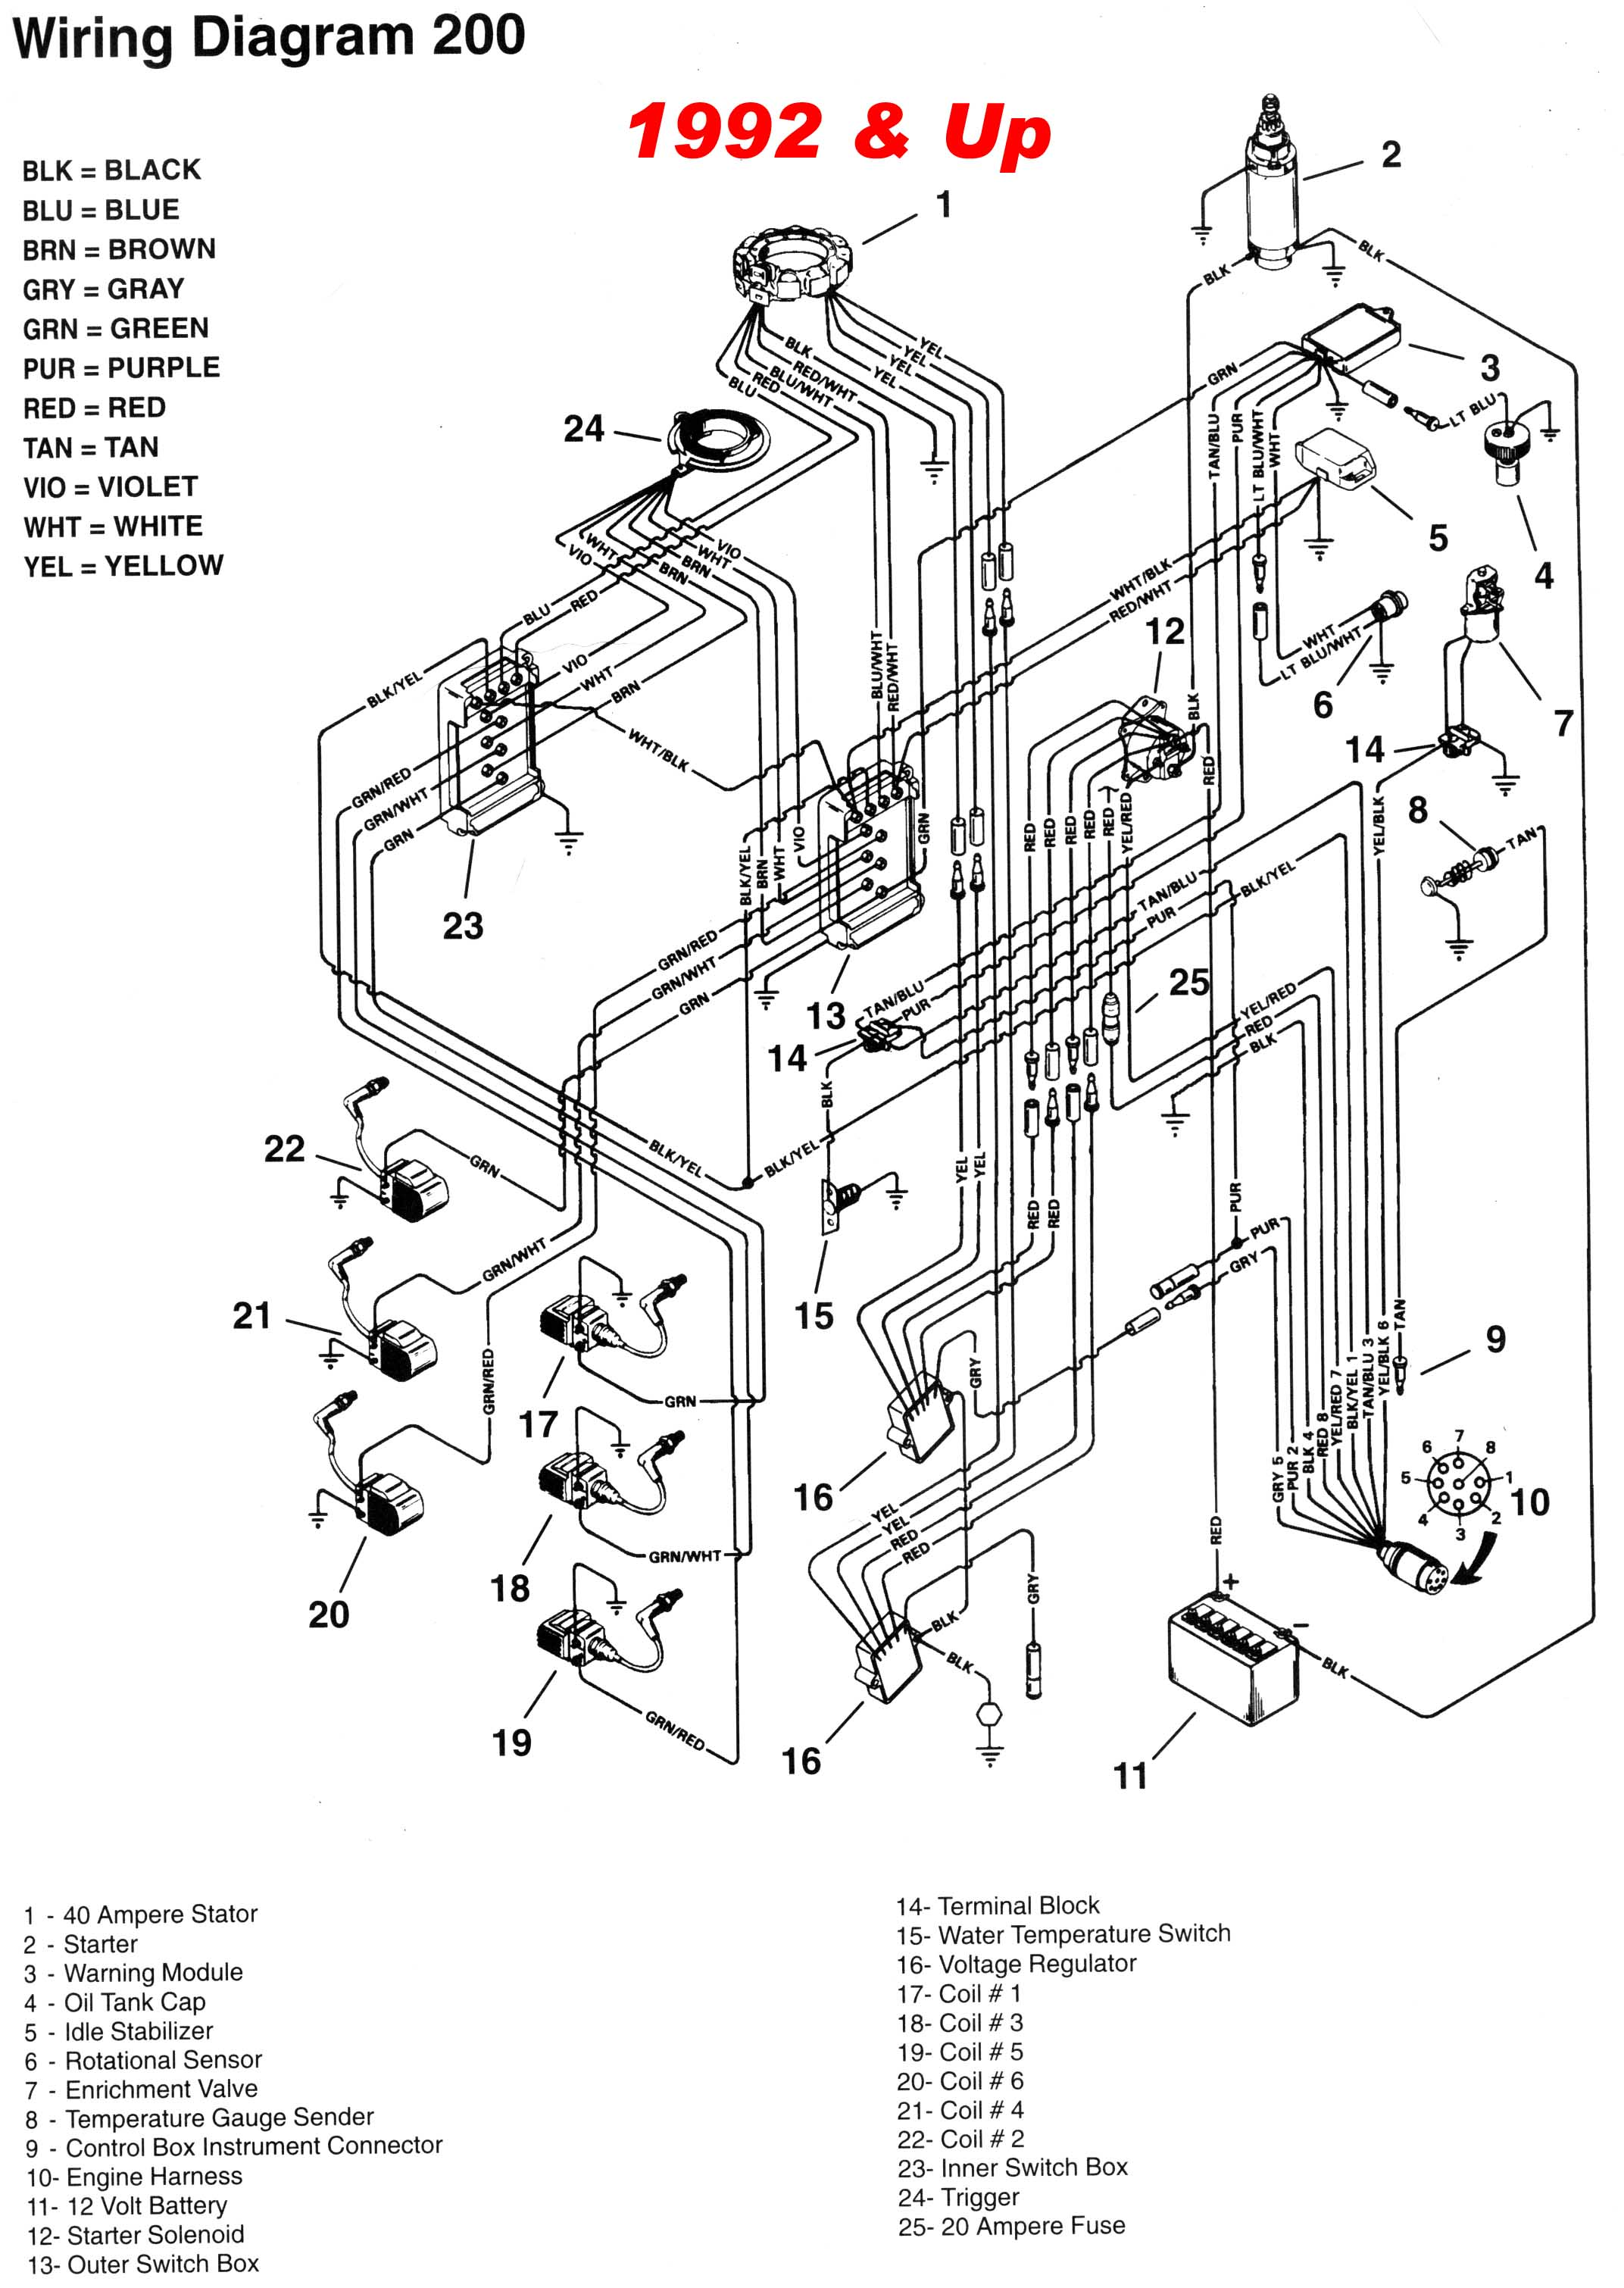 Wiring Diagram For Evinrude Etec 60 Hp Motor